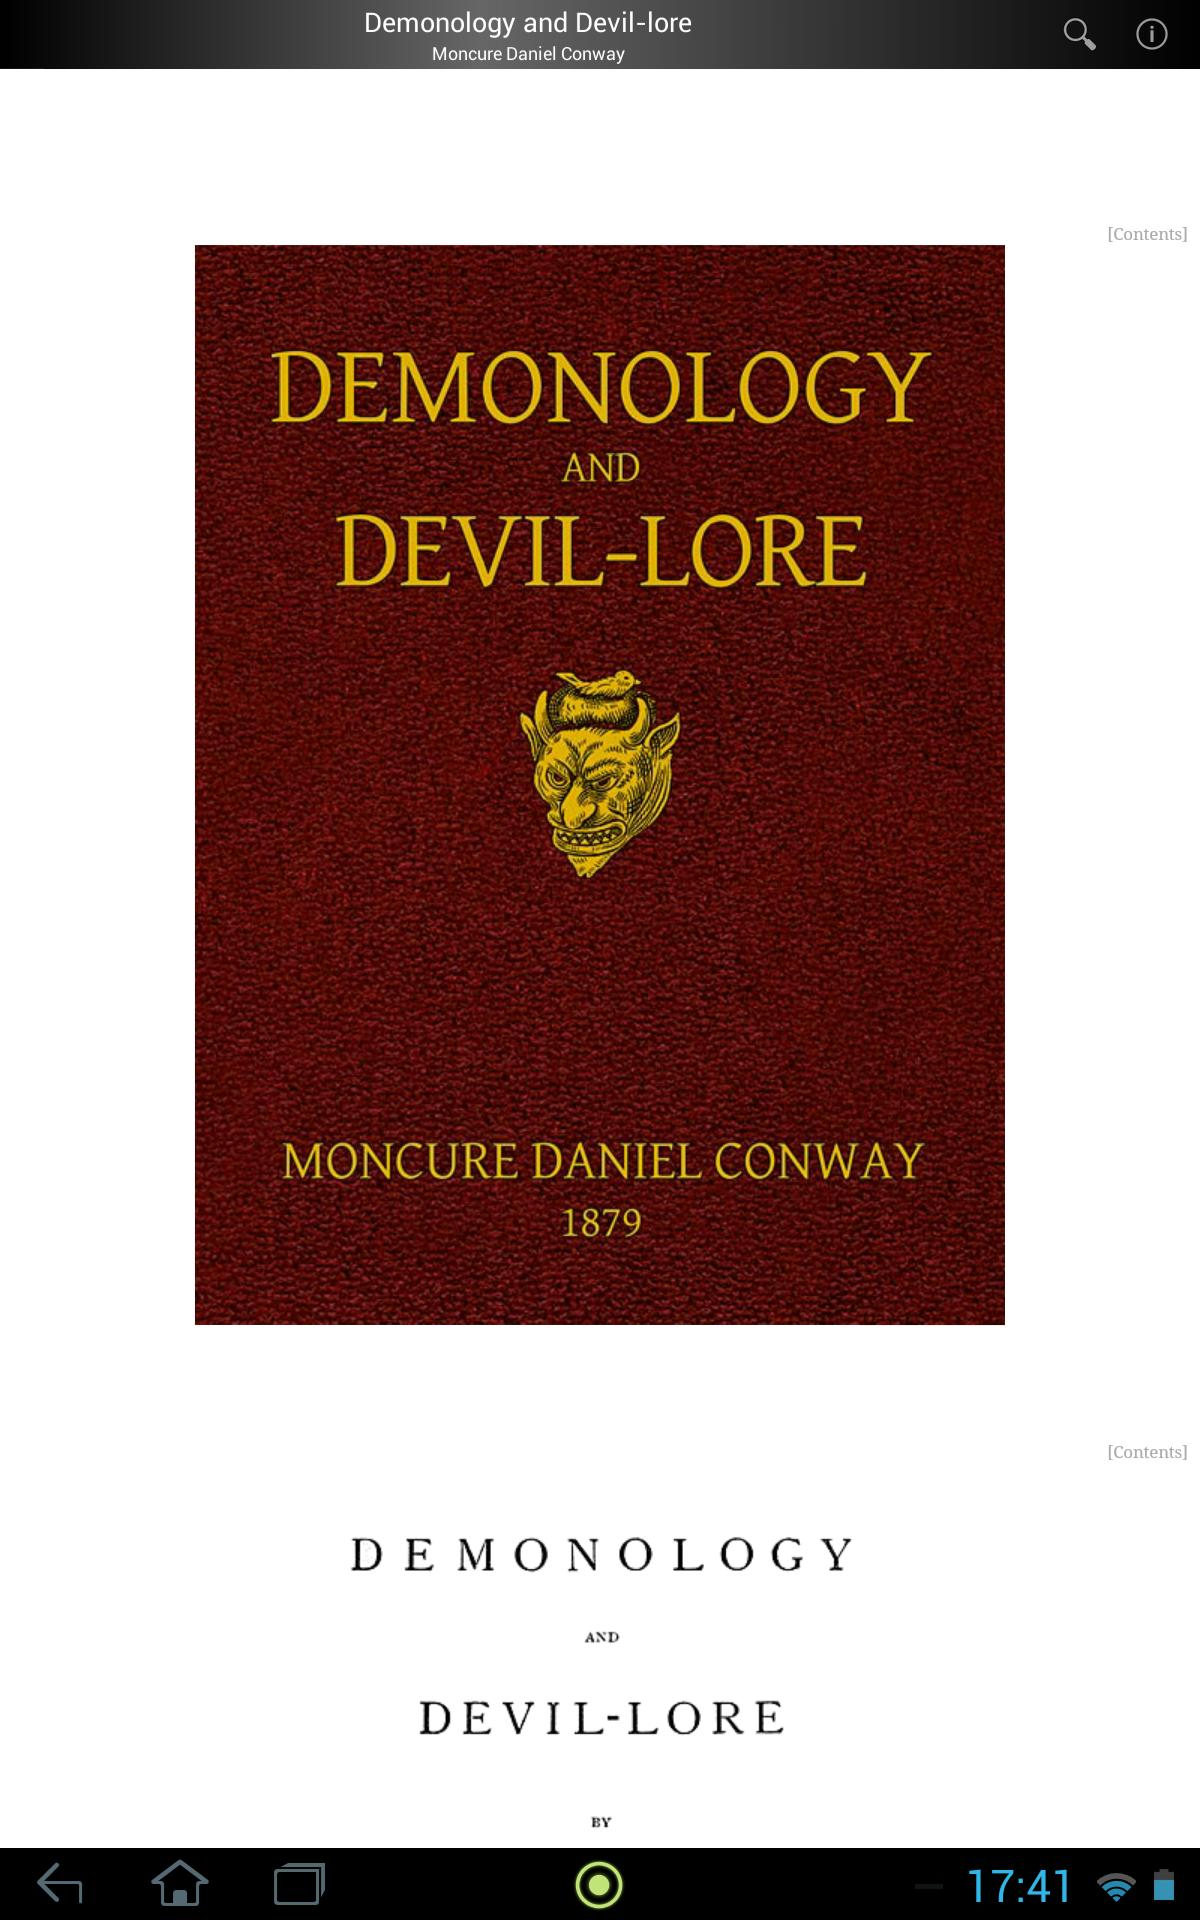 Demonology and Devil-lore poster